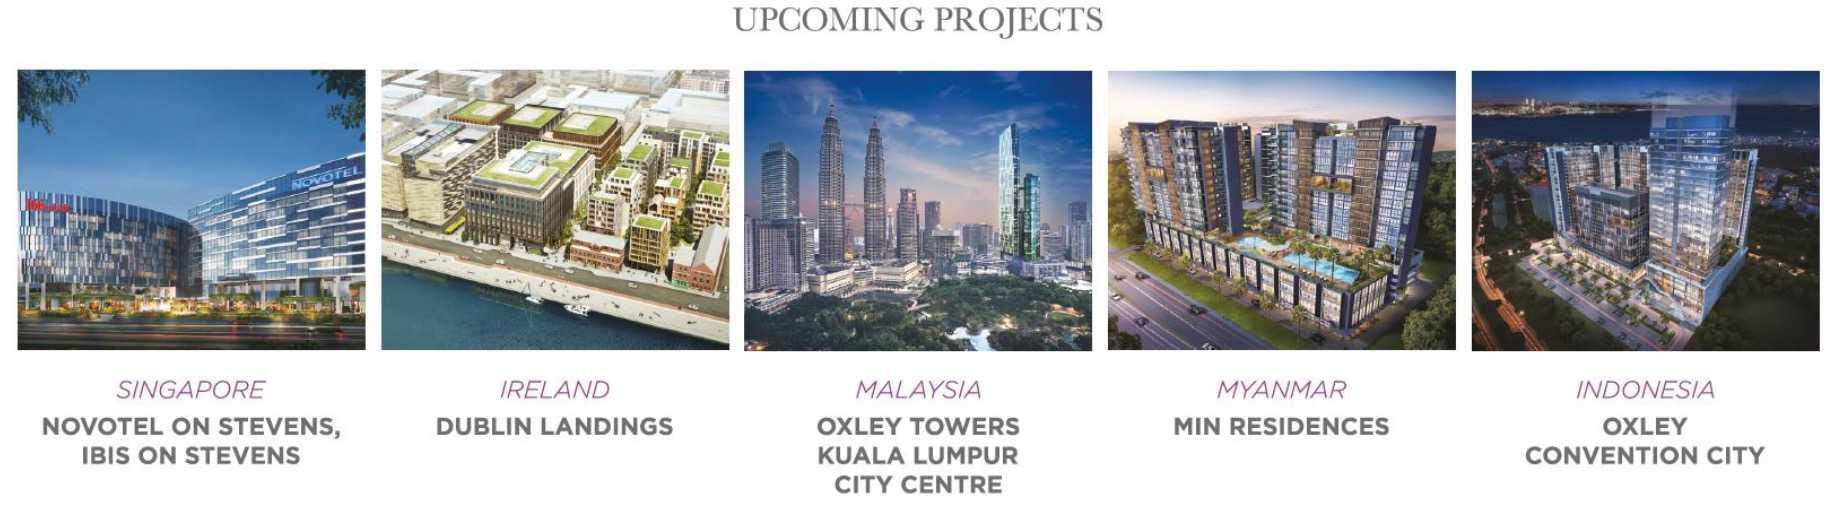 Oxley-Singapore-Developer-TrackRecords-UpcomingProject